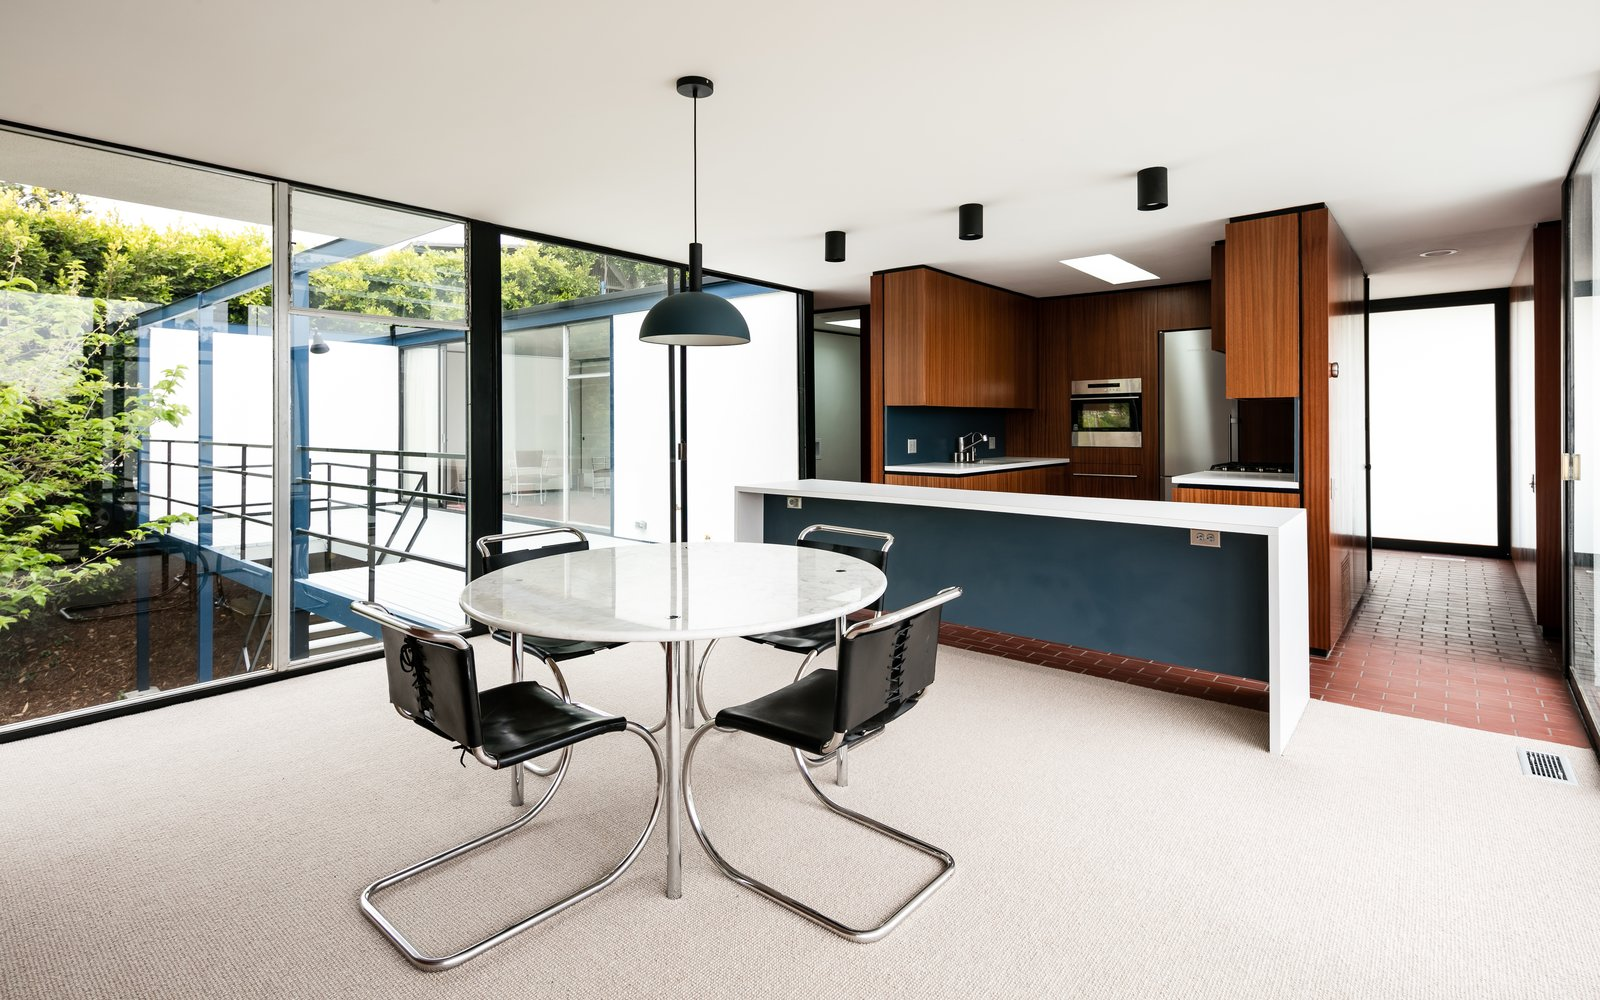 The open kitchen and dining area.